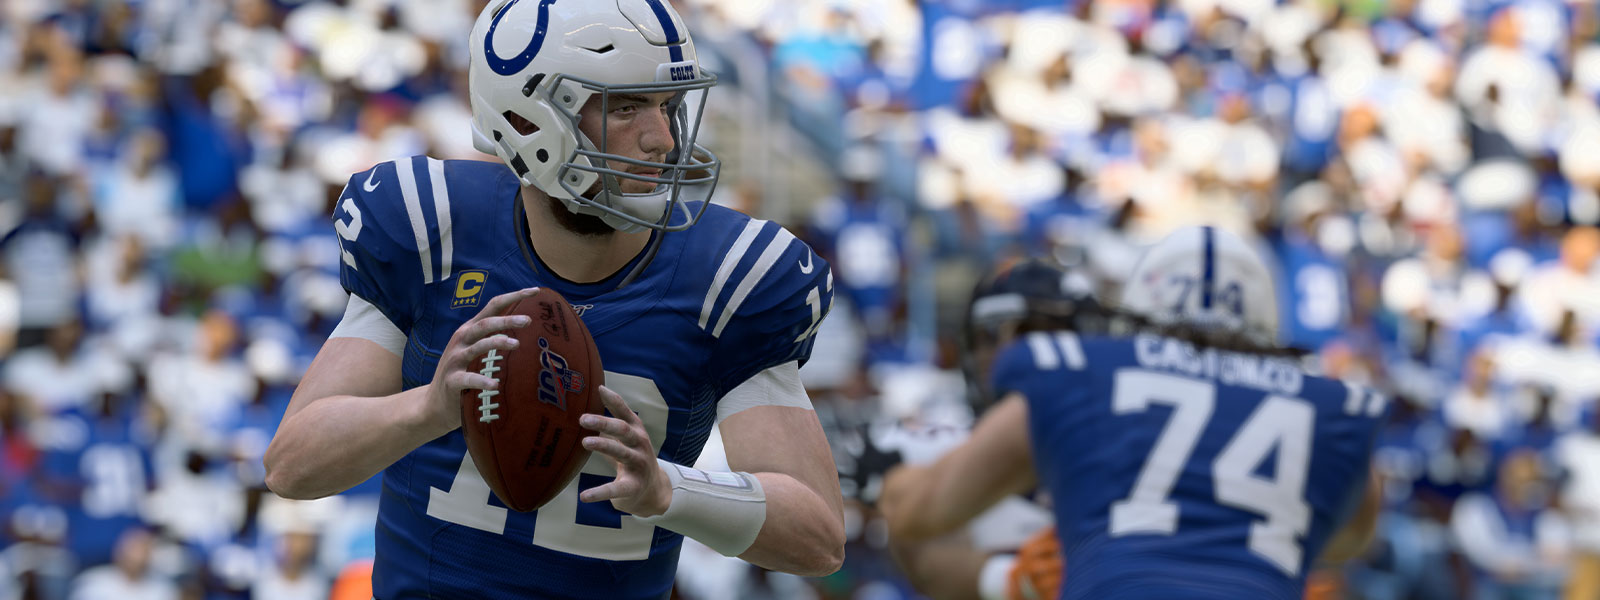 Quarterback do Indianapolis, Colts Andrew Luck, com bola de futebol